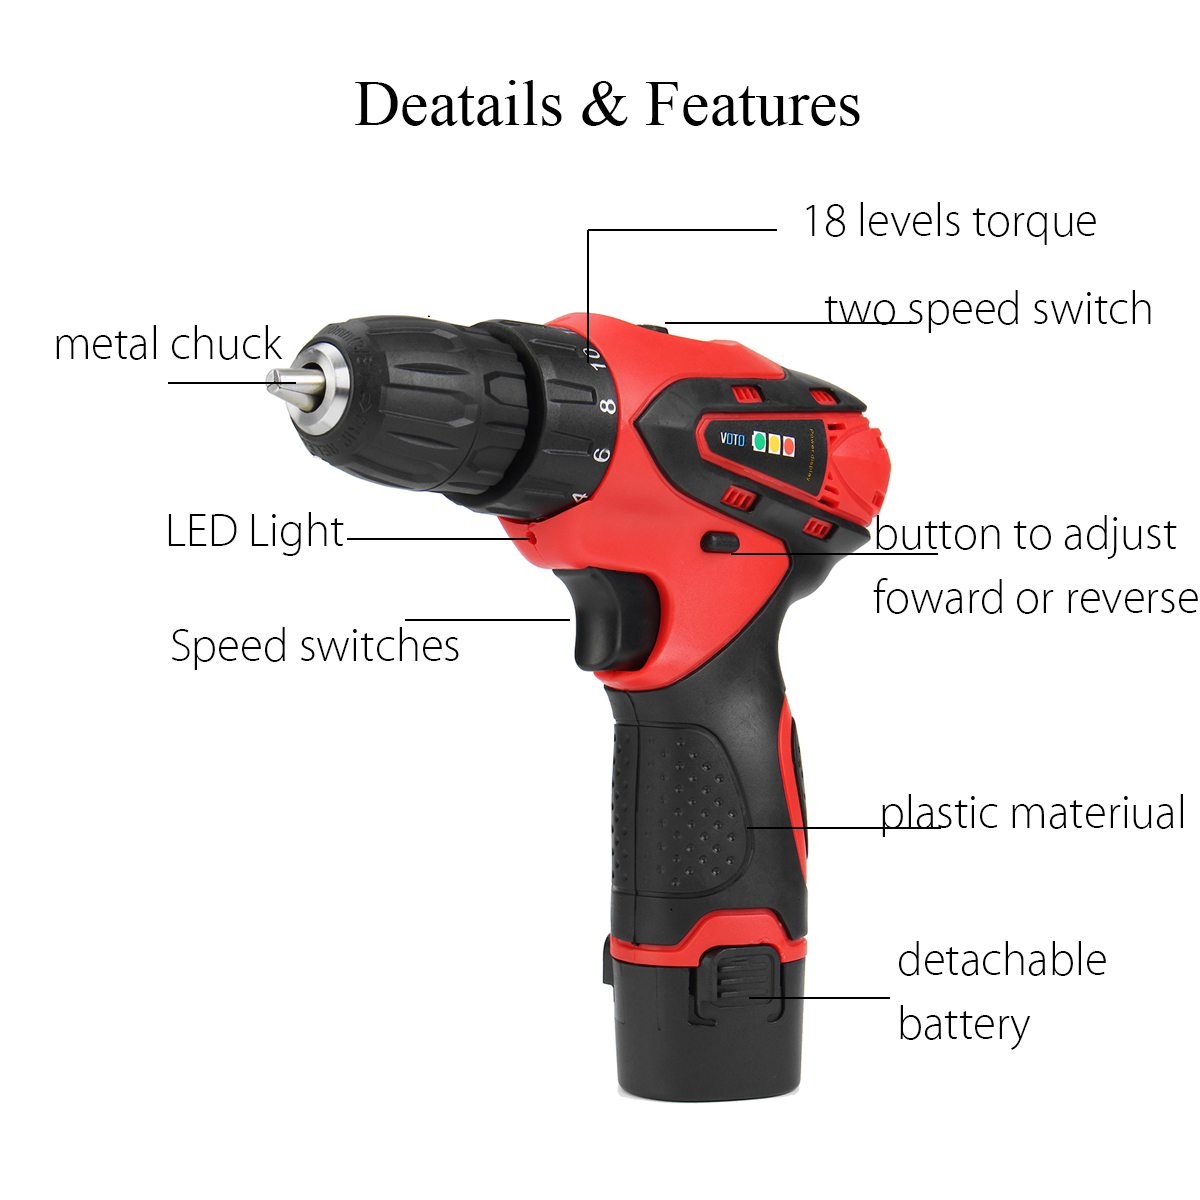 12V Lithium-ion Cordless Drill Driver Set 2-Speed Power Drill Screwdriver Tool